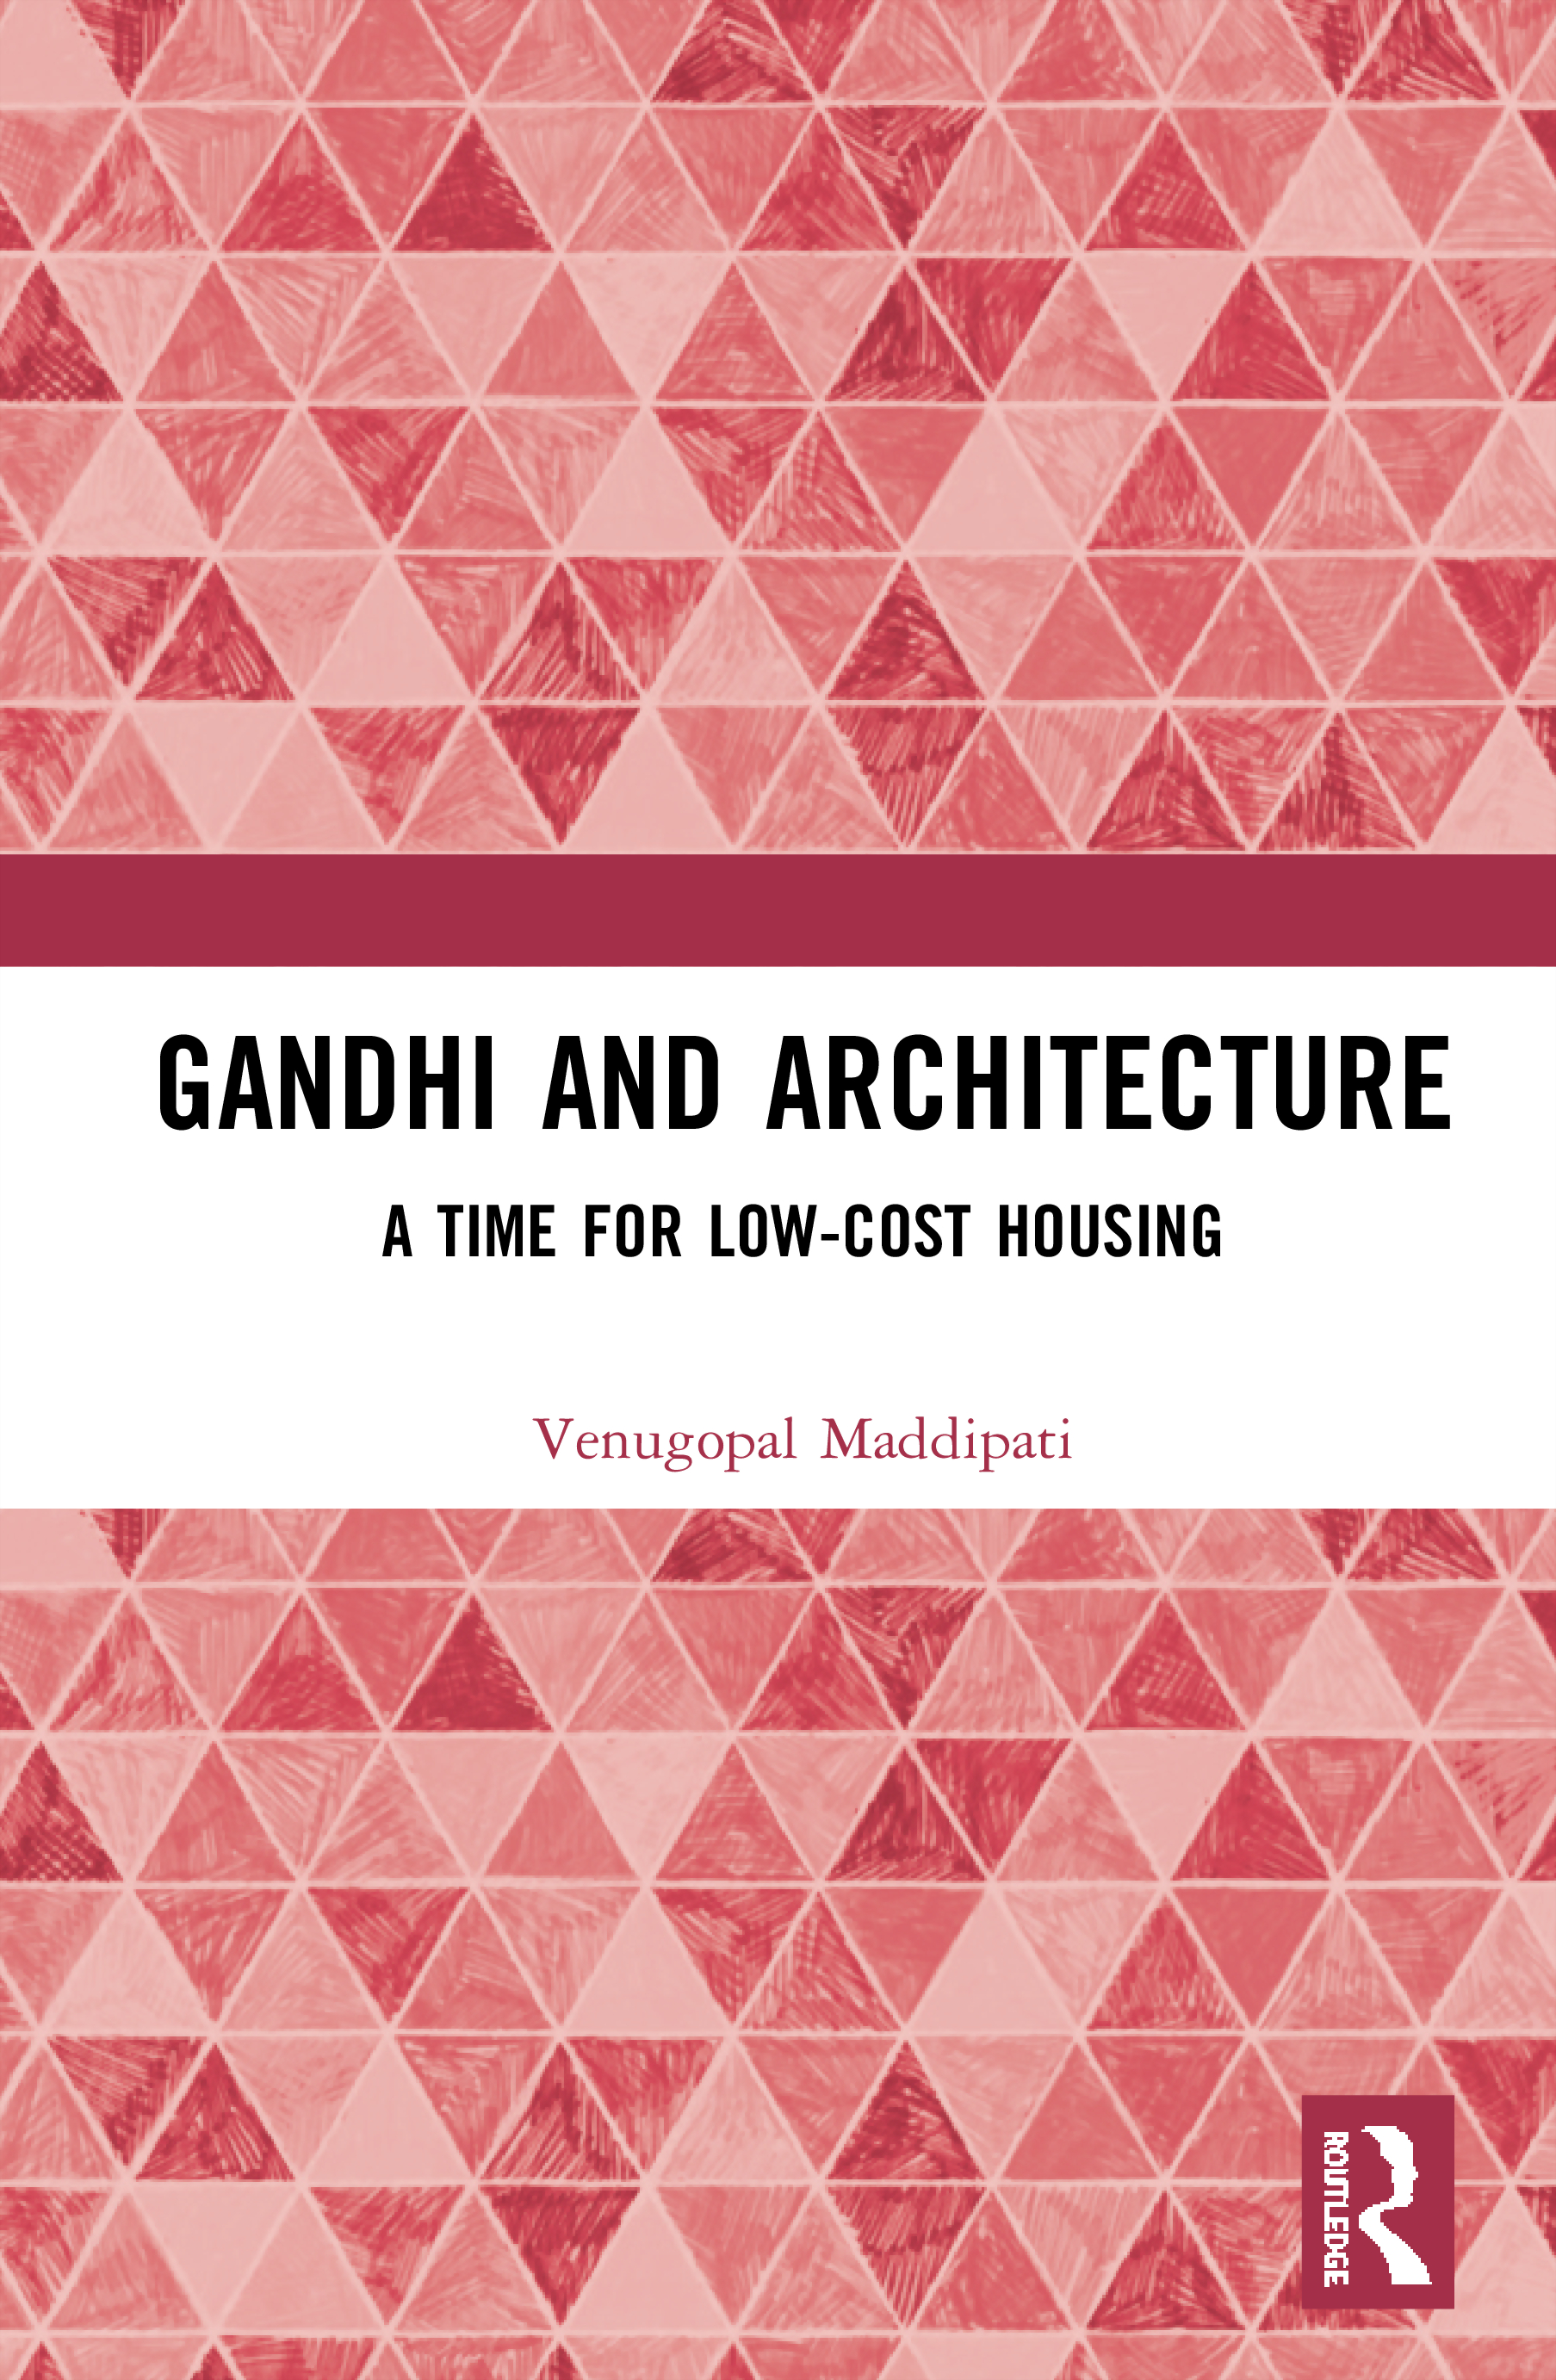 Gandhi and Architecture: A Time for Low-Cost Housing book cover